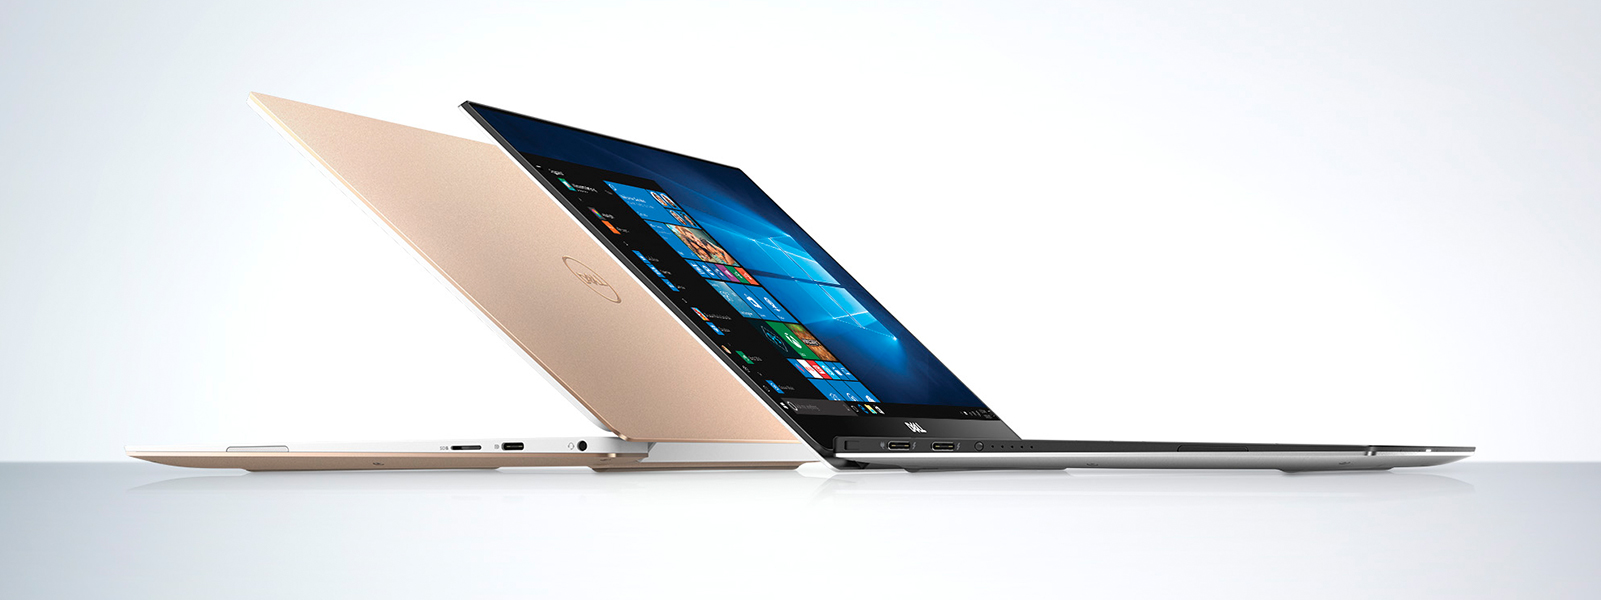 A silver and gold Dell XPS